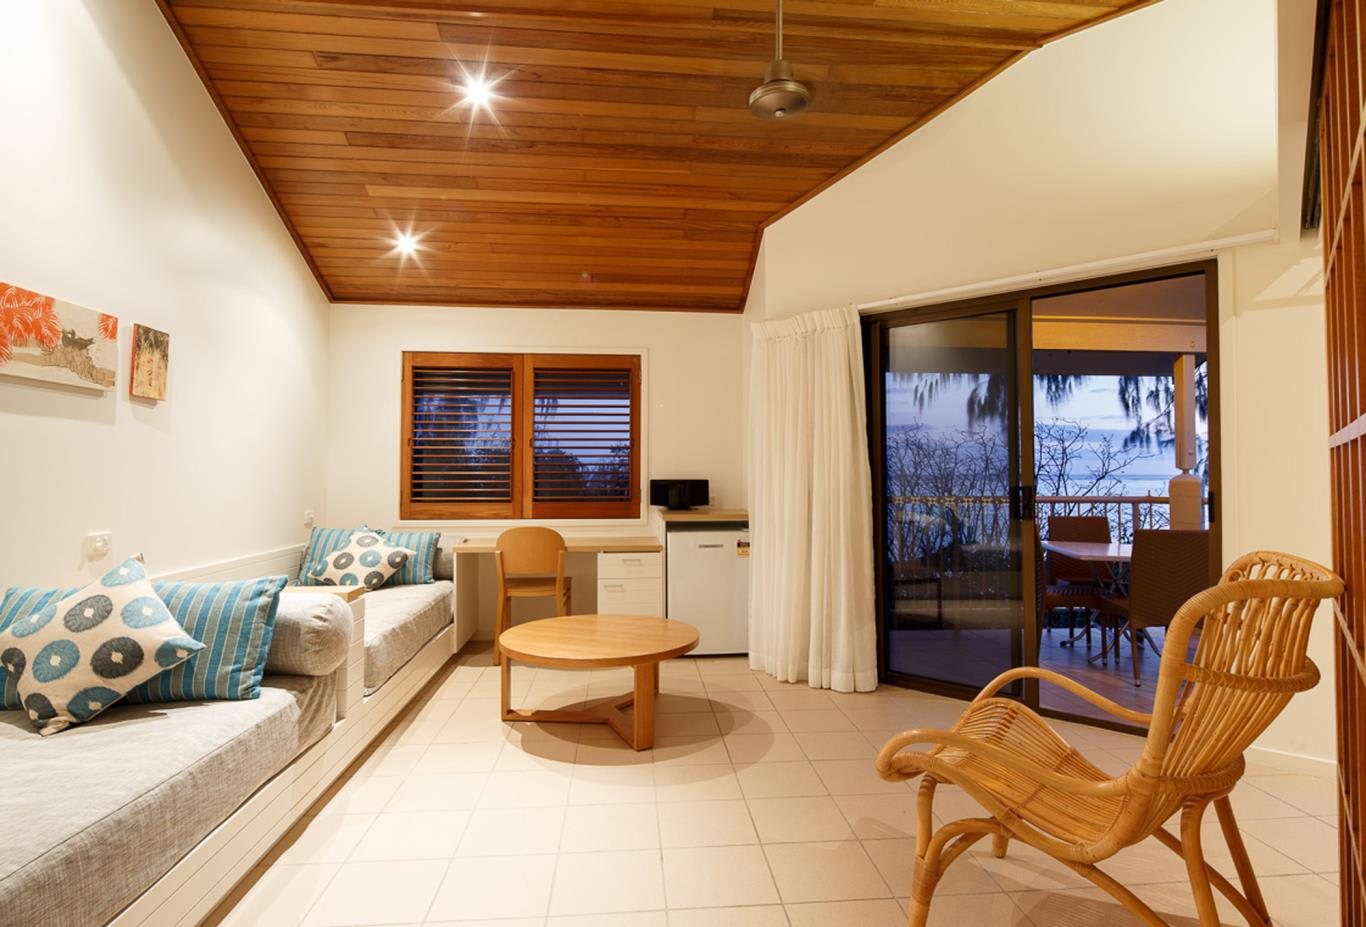 Beachside Suite Interior